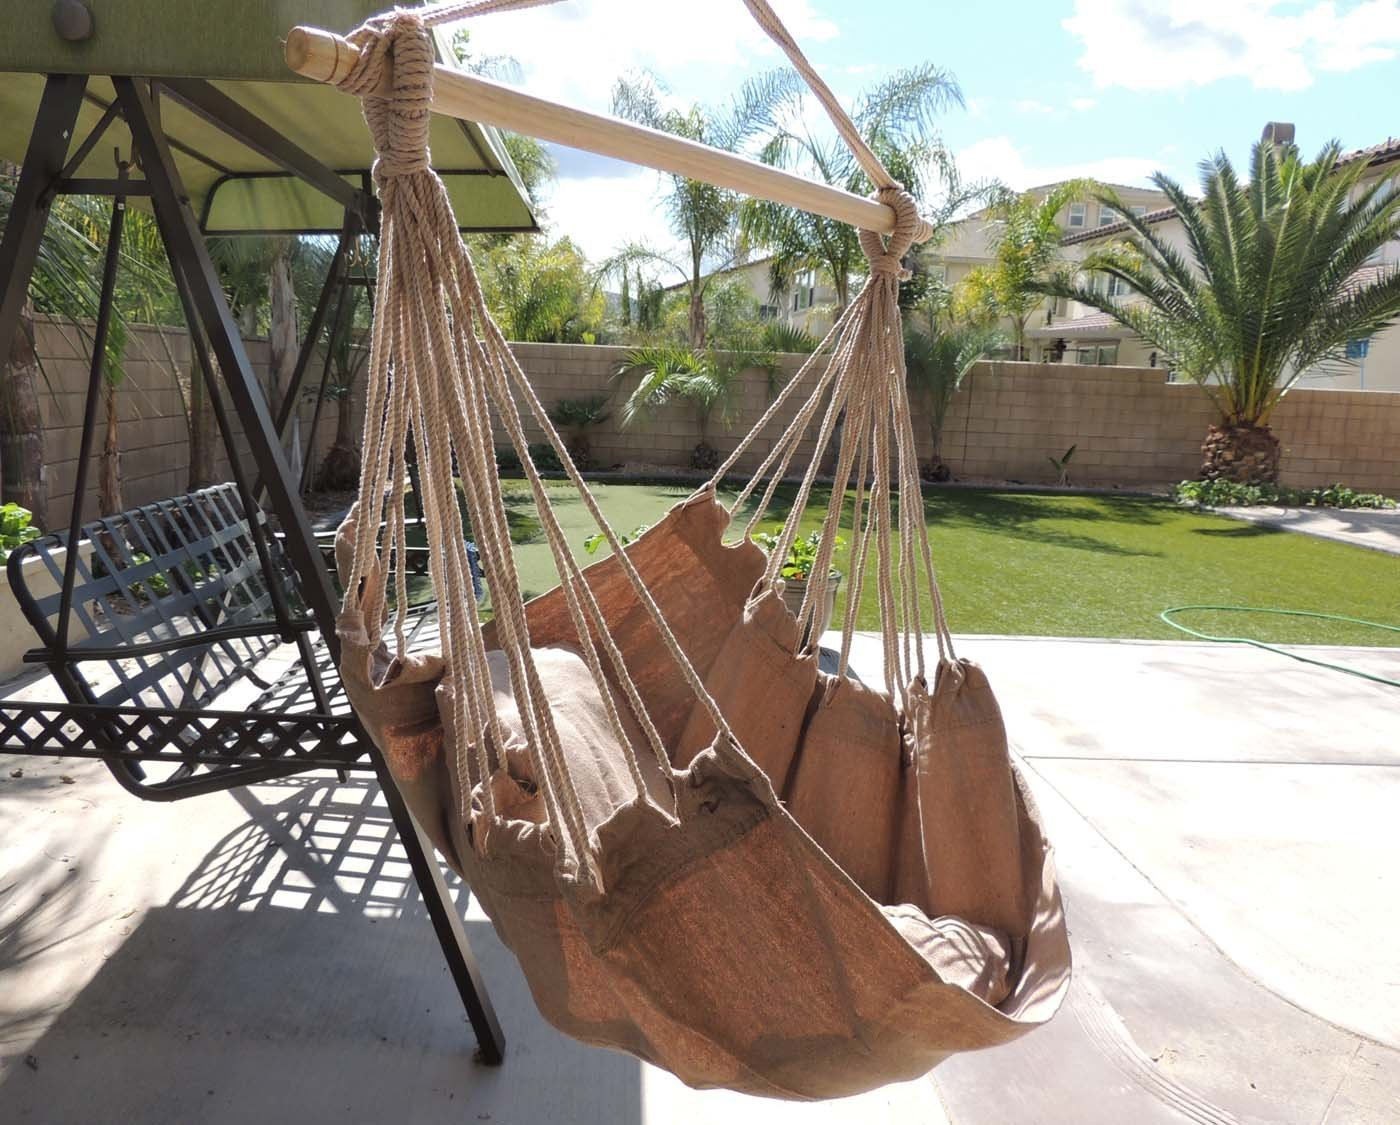 summer landscape swings swing enliven porch a ready simple natural comfy hanging for in with getting your